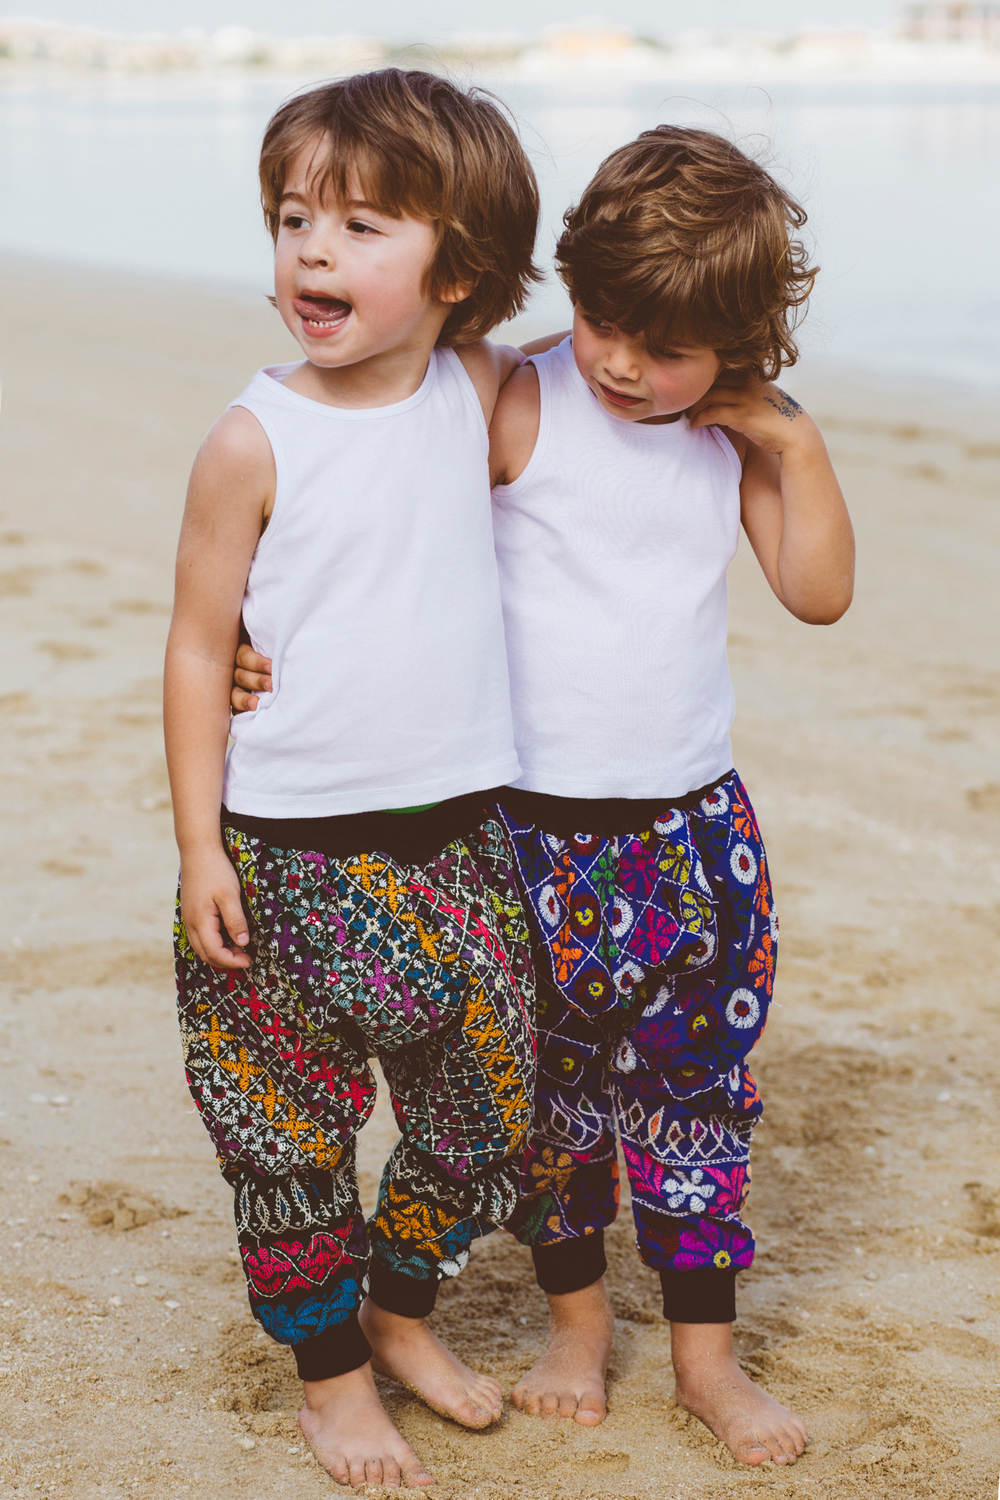 Mini Mochi lookbook by Rebecca Rees Photography